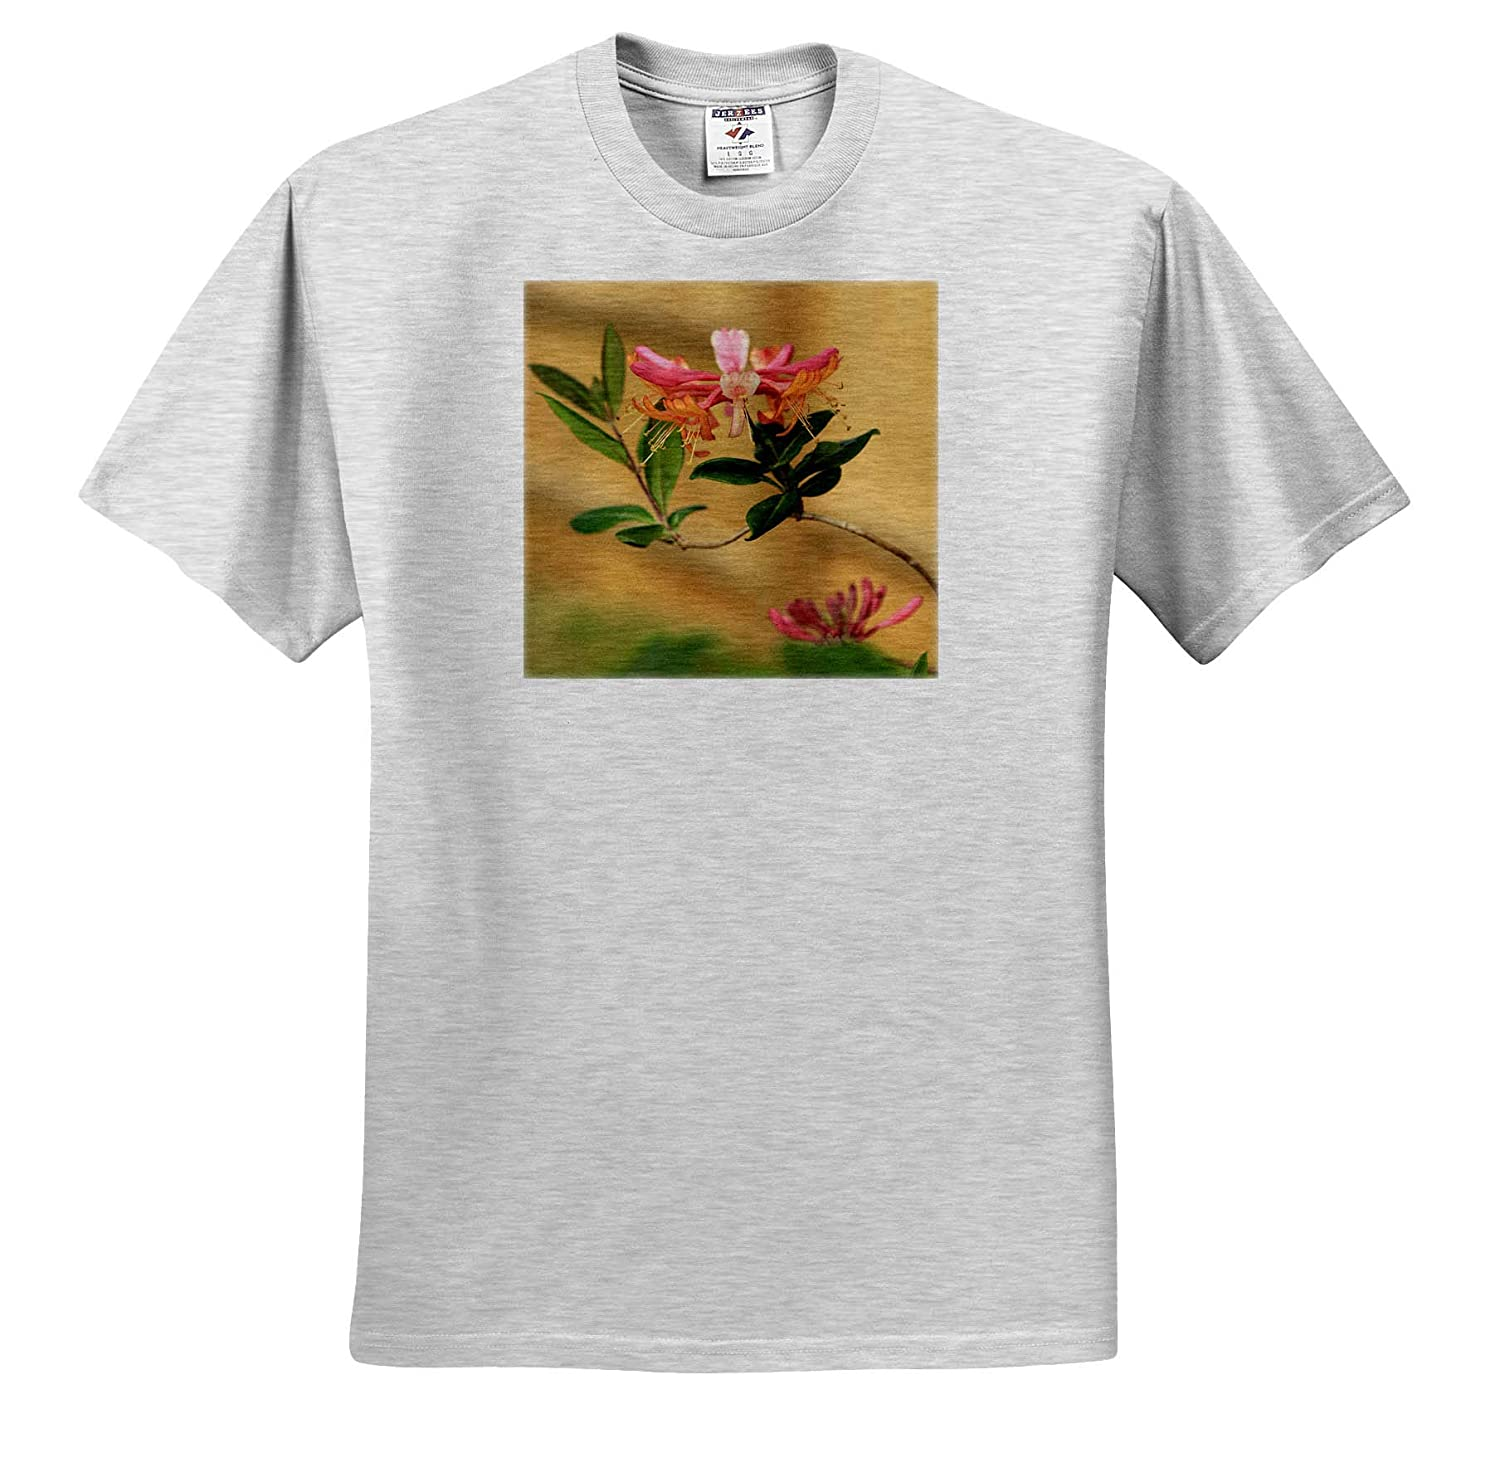 Flowers Photograph of Firecracker Honeysuckle from Our Garden in Full Bloom 3dRose Stamp City - T-Shirts